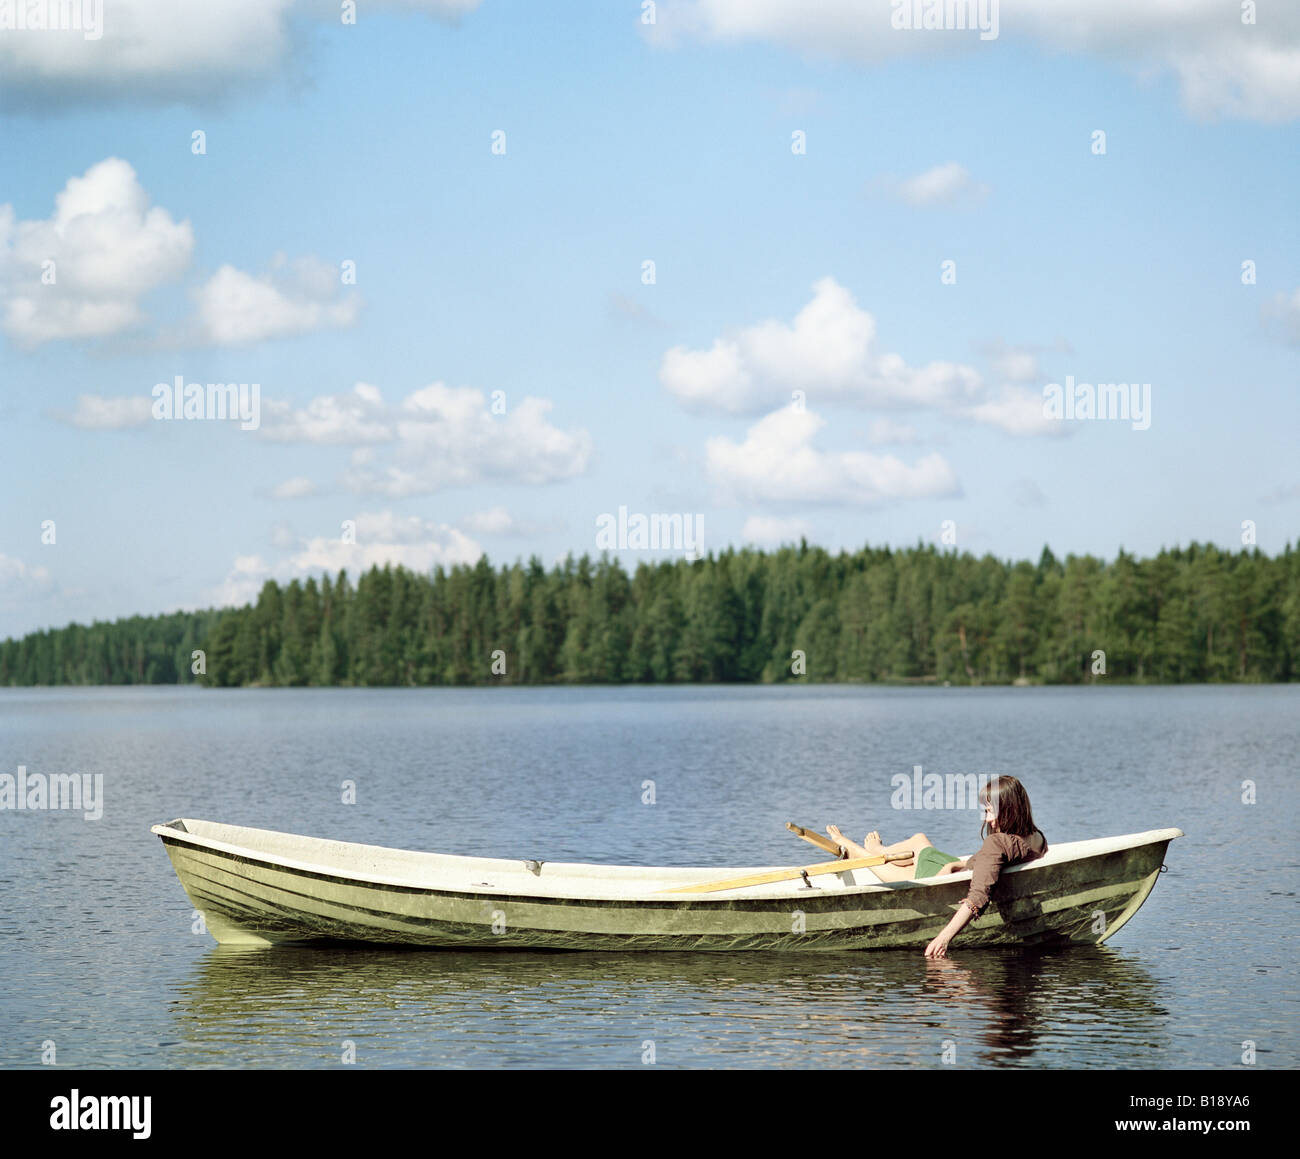 Rear view of a woman sitting in a rowboat Finland - Stock Image